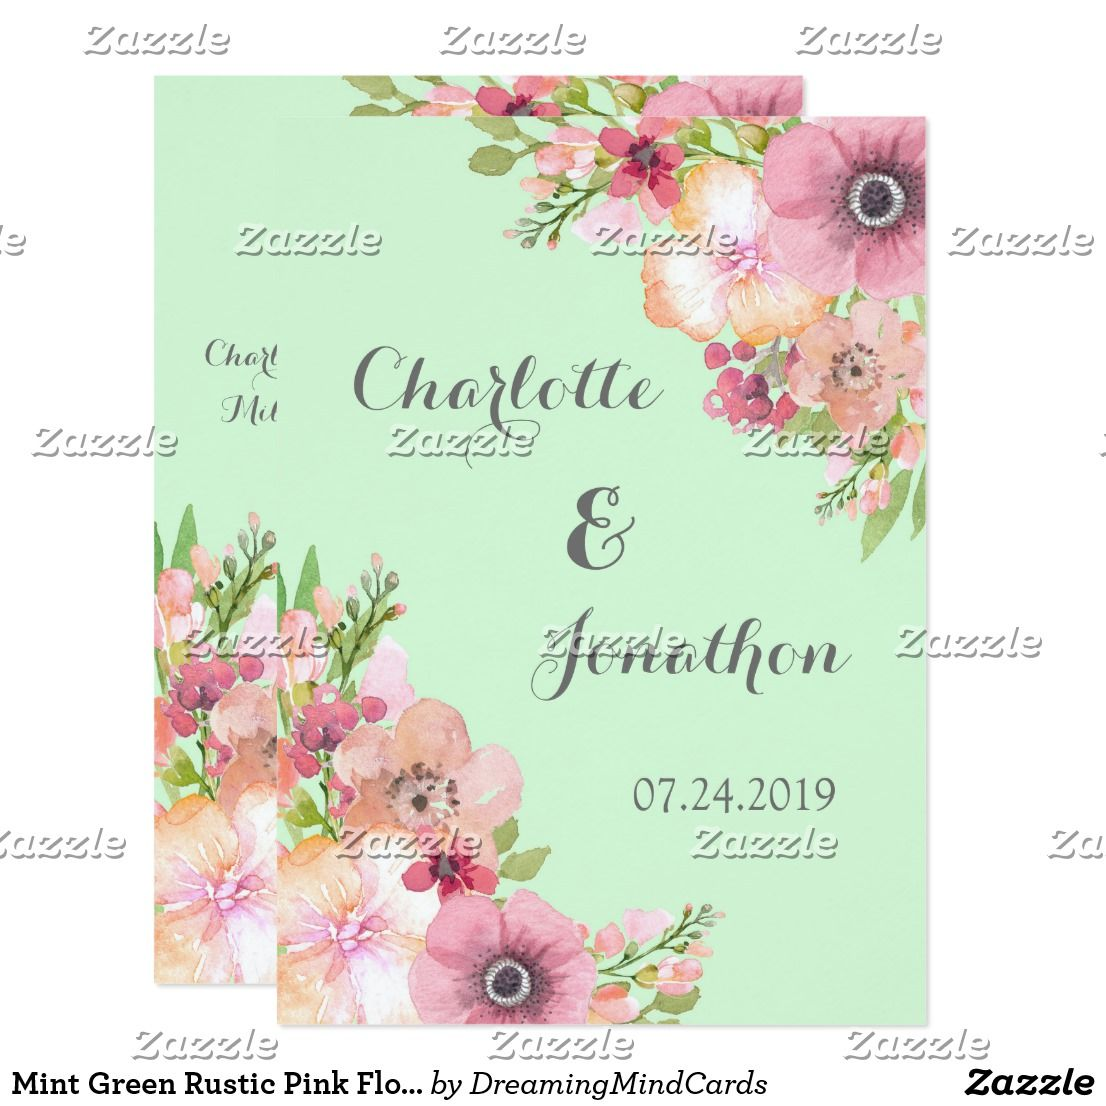 Mint Green Rustic Pink Flowers Wedding Invitations | Wedding and ...